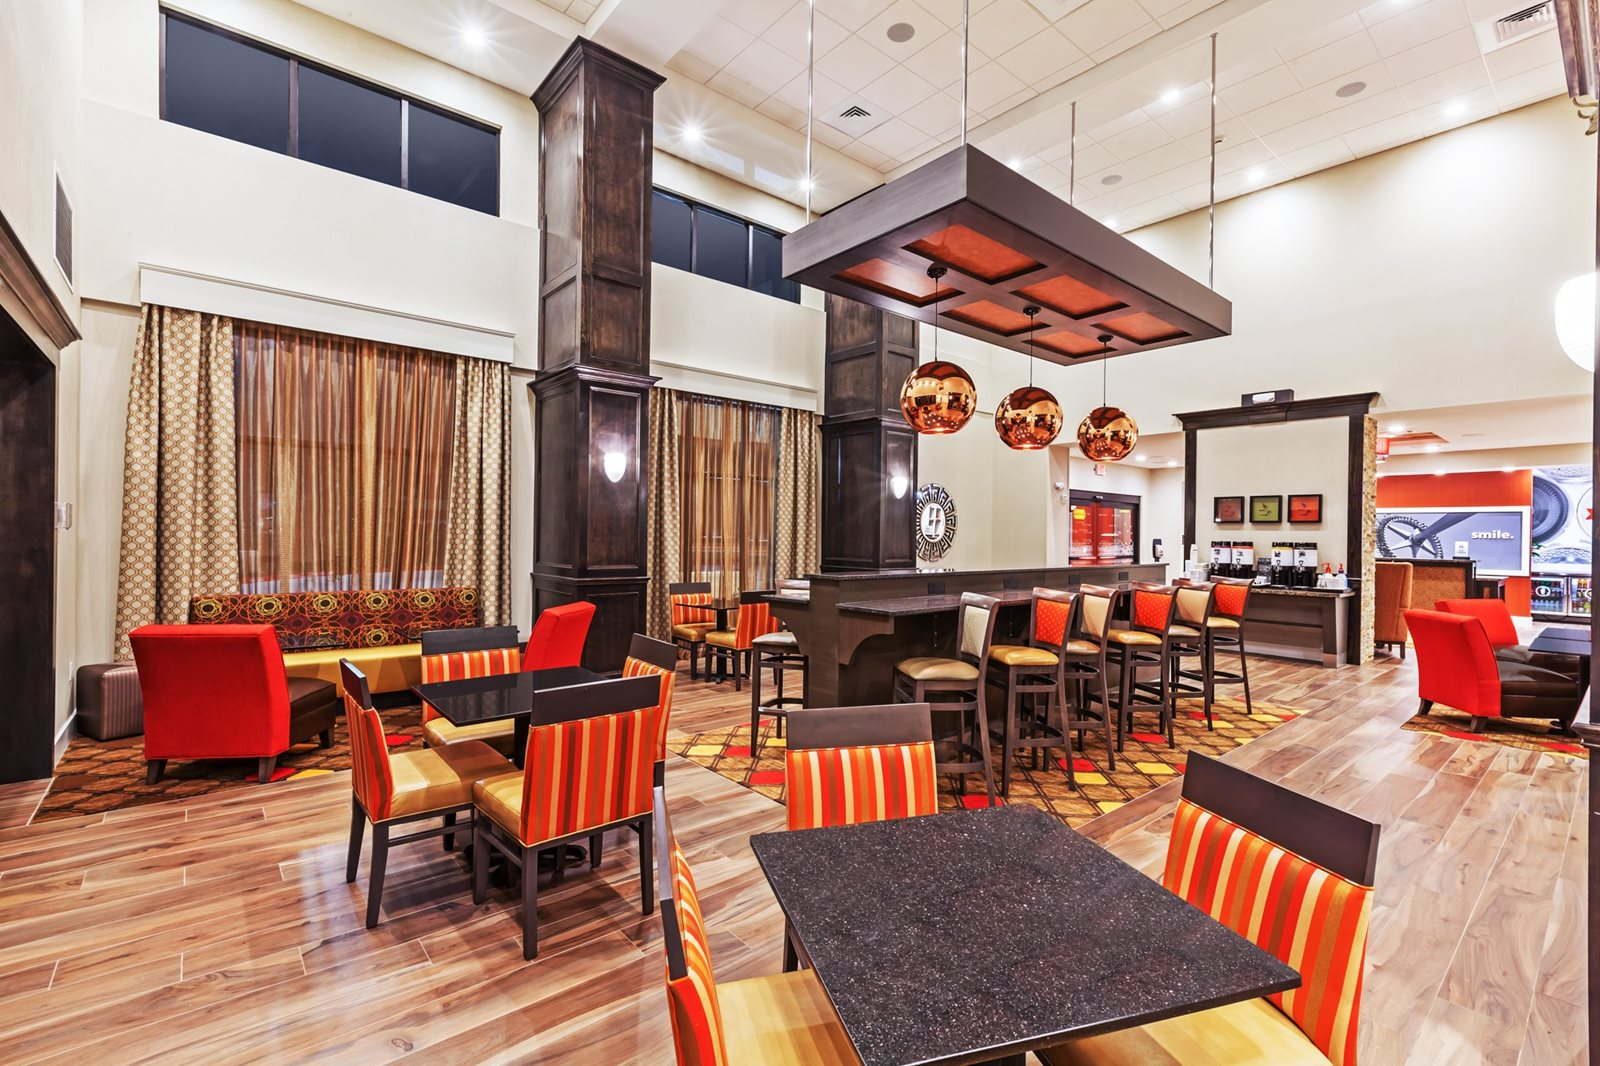 Hampton Inn & Suites - Atascocita